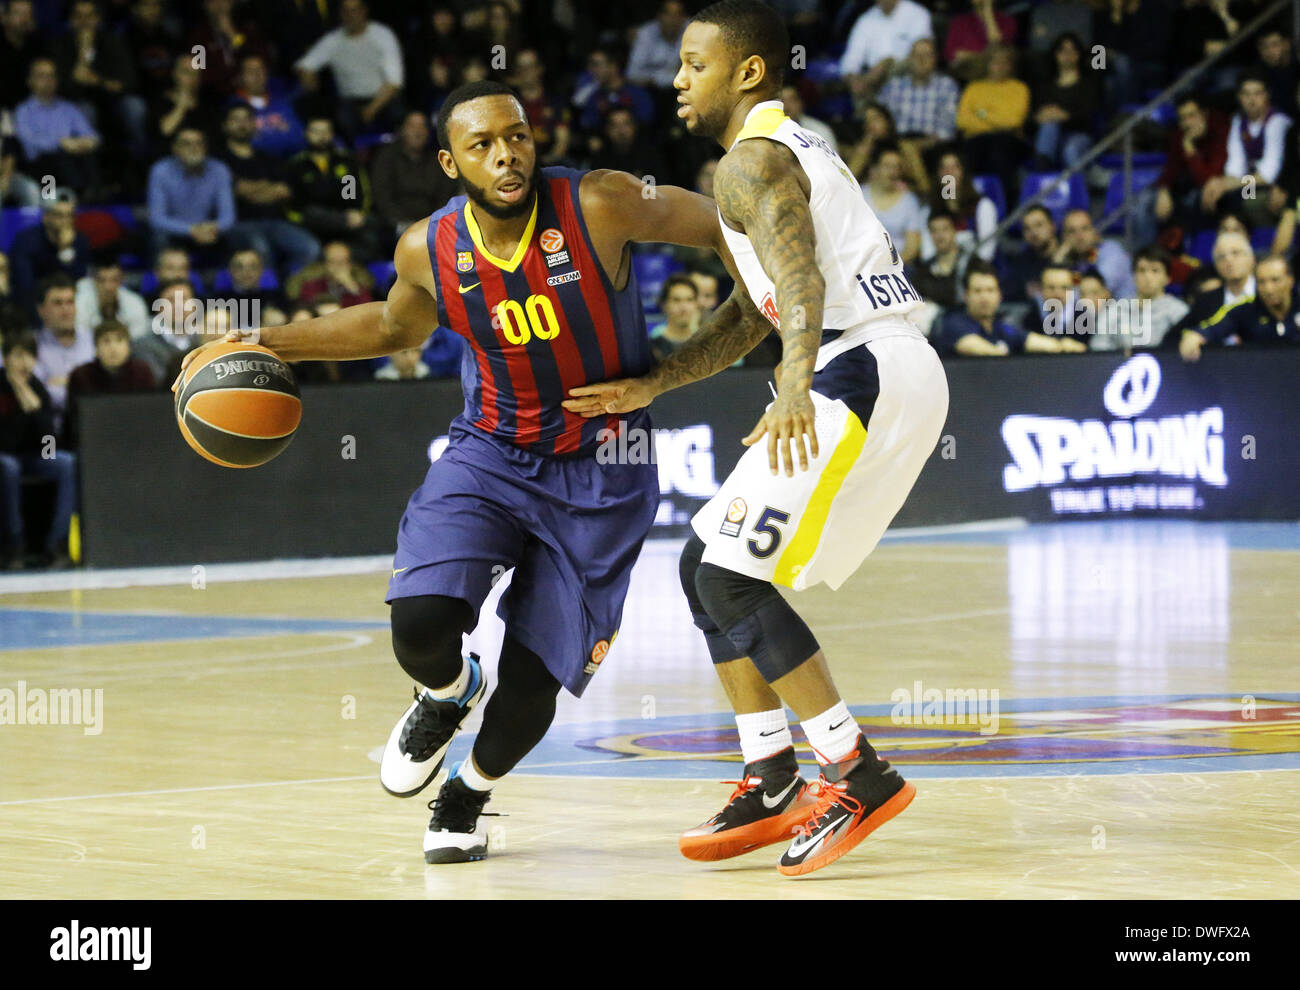 Barcelona, Spain. 6th Mar, 2014. BARCELONA, March 06. Jacob Pullen and Pierre Jackson in the match between FC Barcelona and Fenerbahce, for week 9 of the Euroleague Top 16 basketball match at the Palau Blaugrana on March 6, 2014. Photo: Aline Delfim/Urbanandsport/Nurphoto. Credit:  Joan Valls/NurPhoto/ZUMAPRESS.com/Alamy Live News - Stock Image